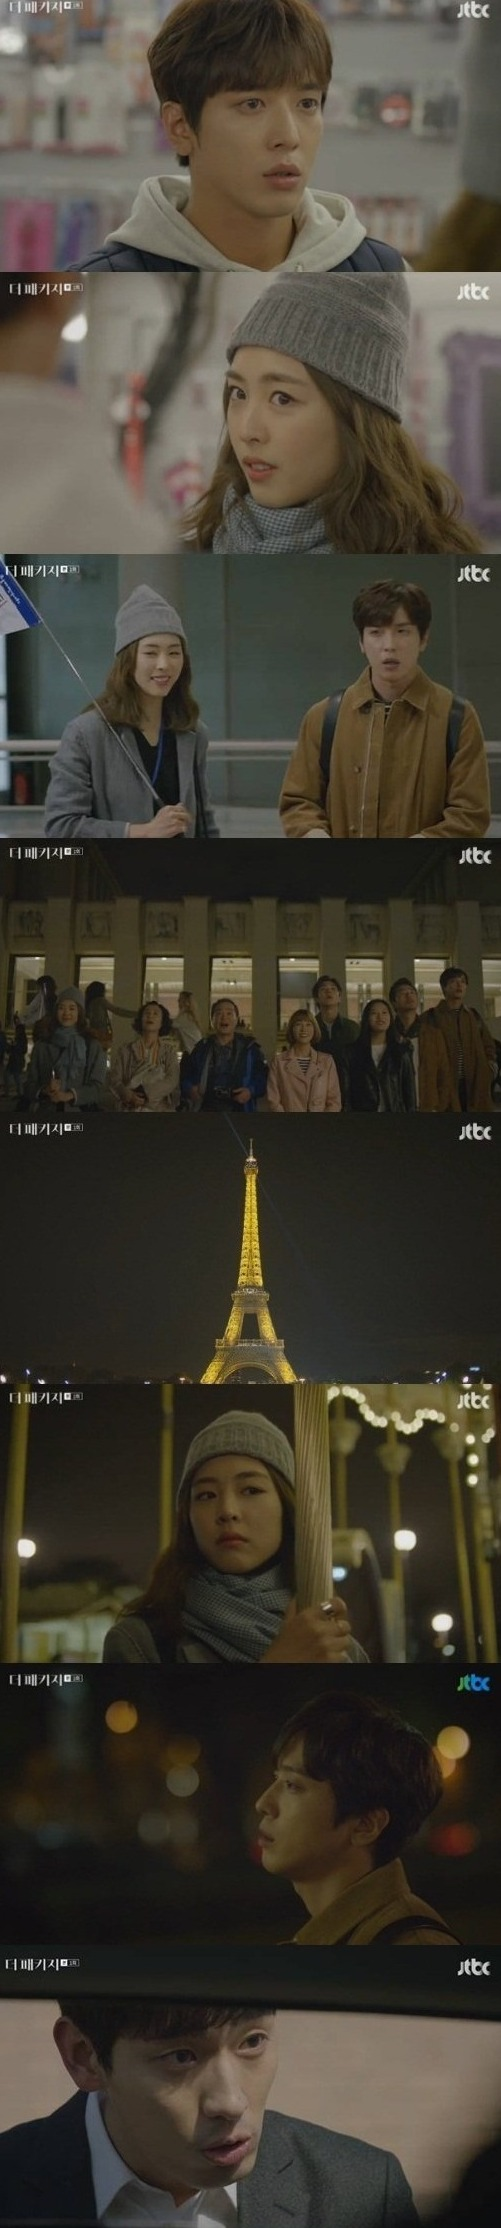 [Spoiler] Added episodes 1 and 2 captures for the Korean drama